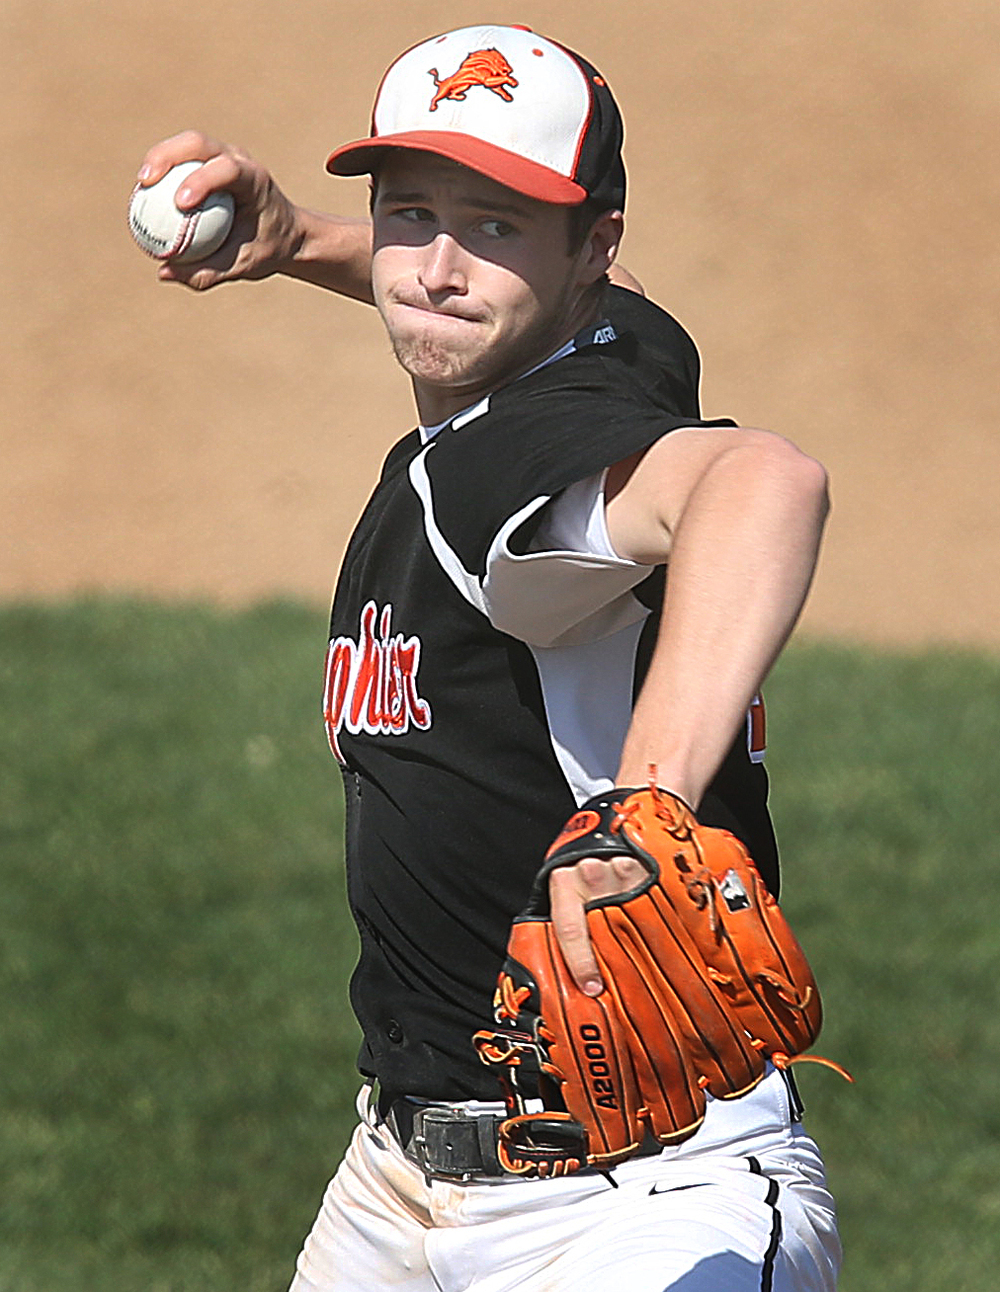 Lanphier's Kody Childers was the losing pitcher of the game. The Sacred Heart Griffin Cyclones defeated the Lanphier High School Lions 15-5 to win the championship of the City Series Baseball Tournament at Robin Roberts Stadium in Springfield on Tuesday, May 12, 2015. David Spencer/The State Journal-Register